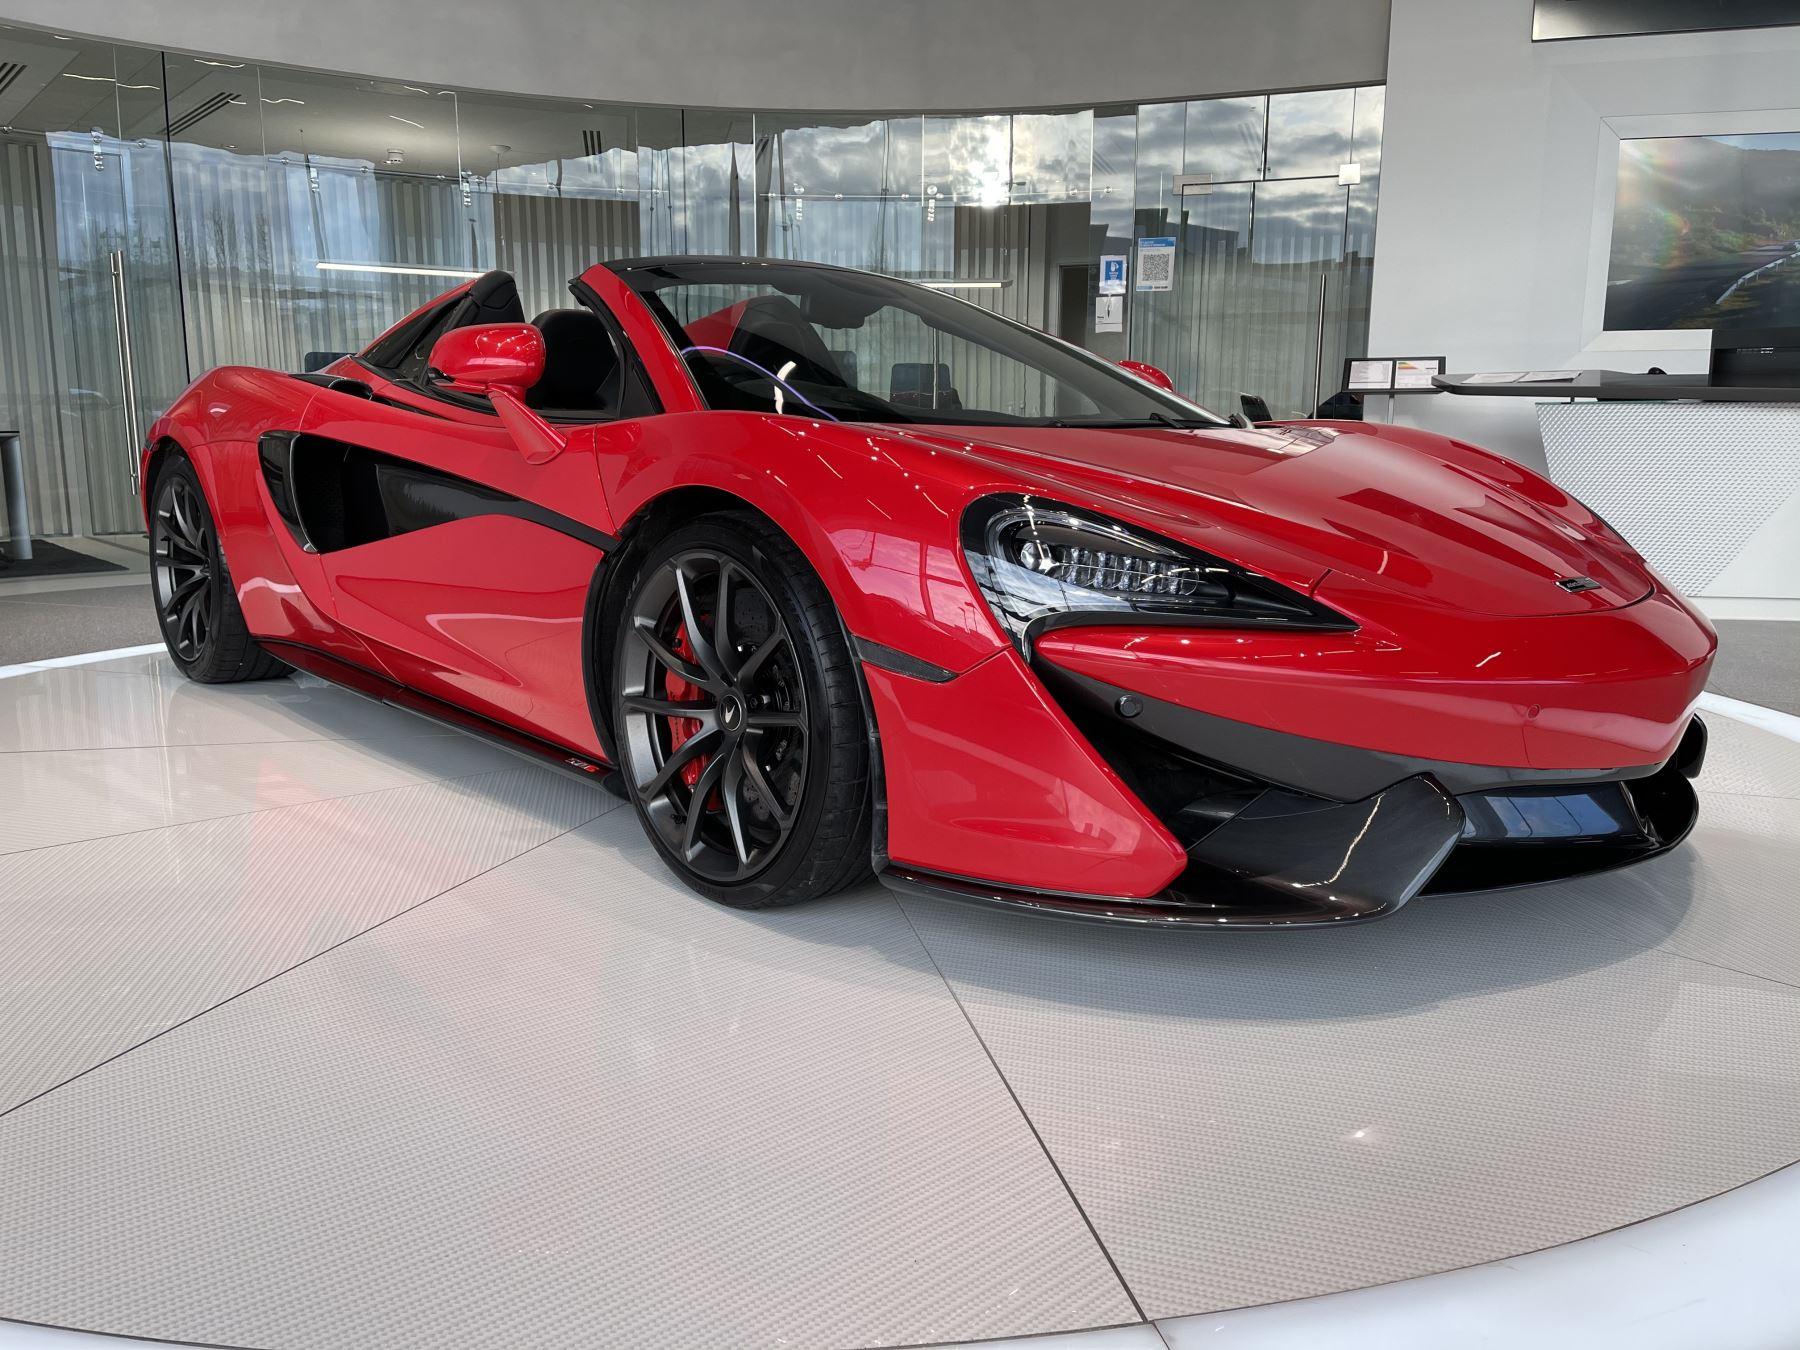 McLaren 570S Spider SSG  3.8 Semi-Automatic 2 door Convertible (2018)